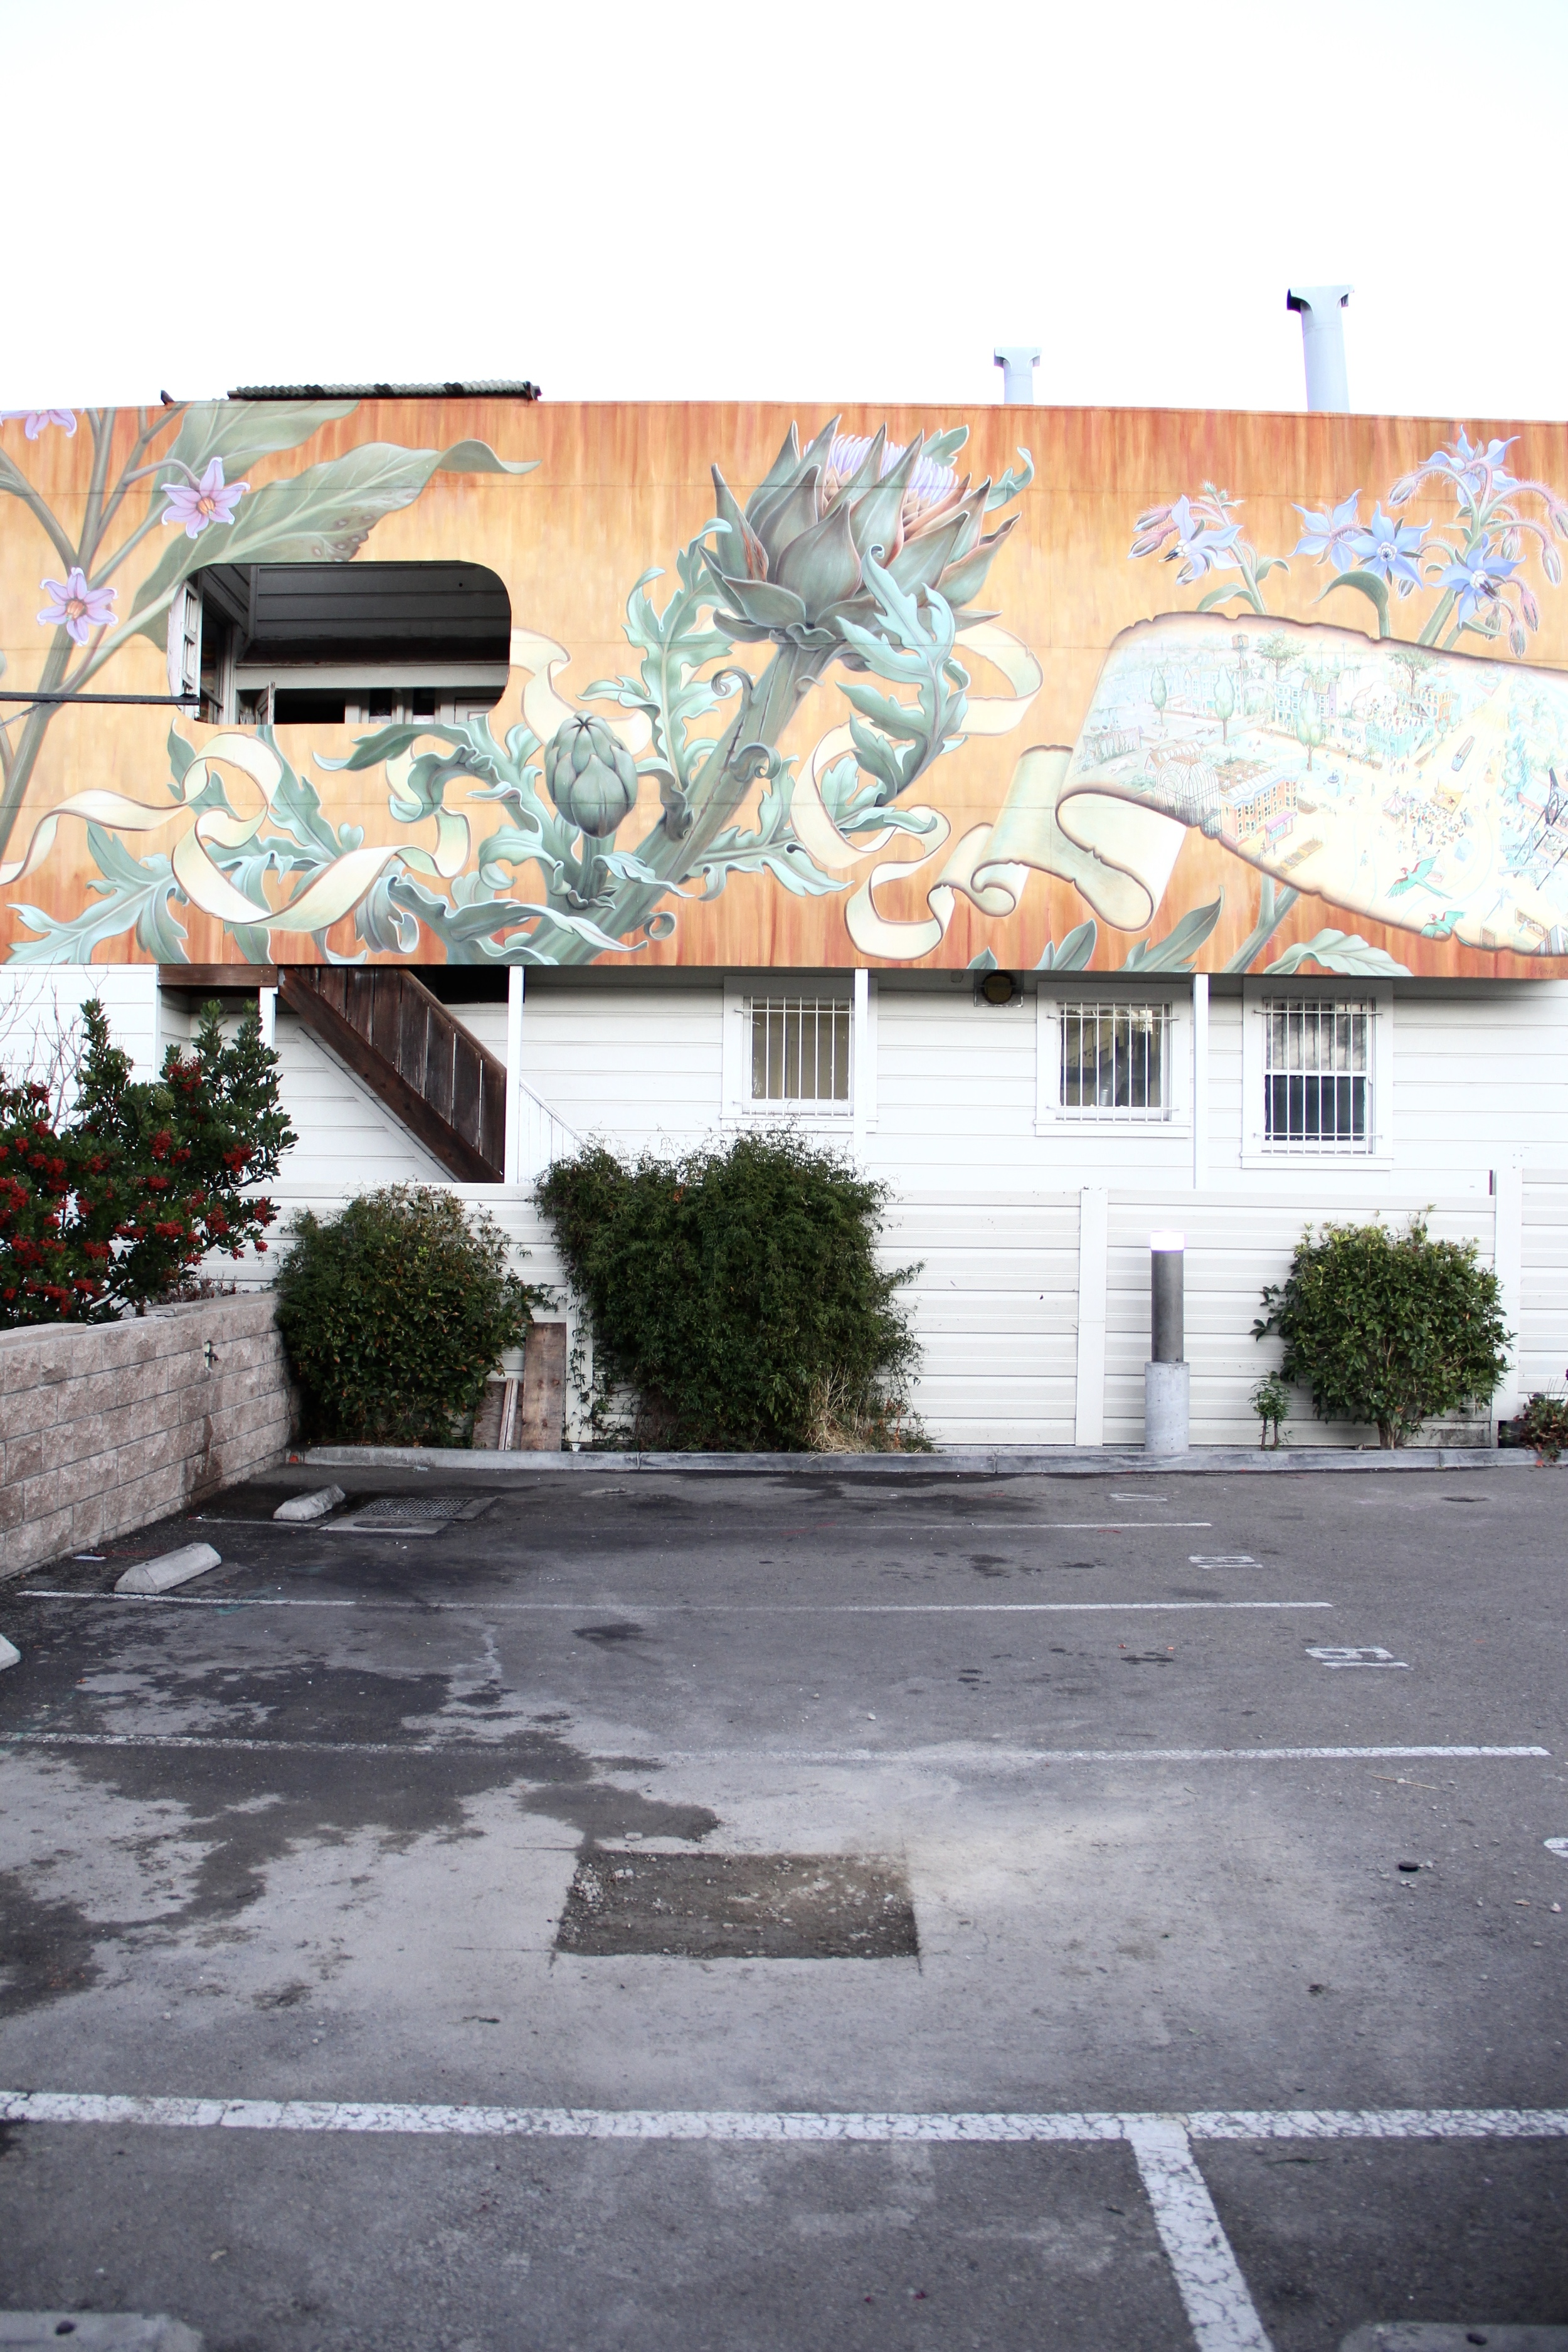 An empty parking lot achieves charm through a blooming artichoke | Beyond Ordinary Guides